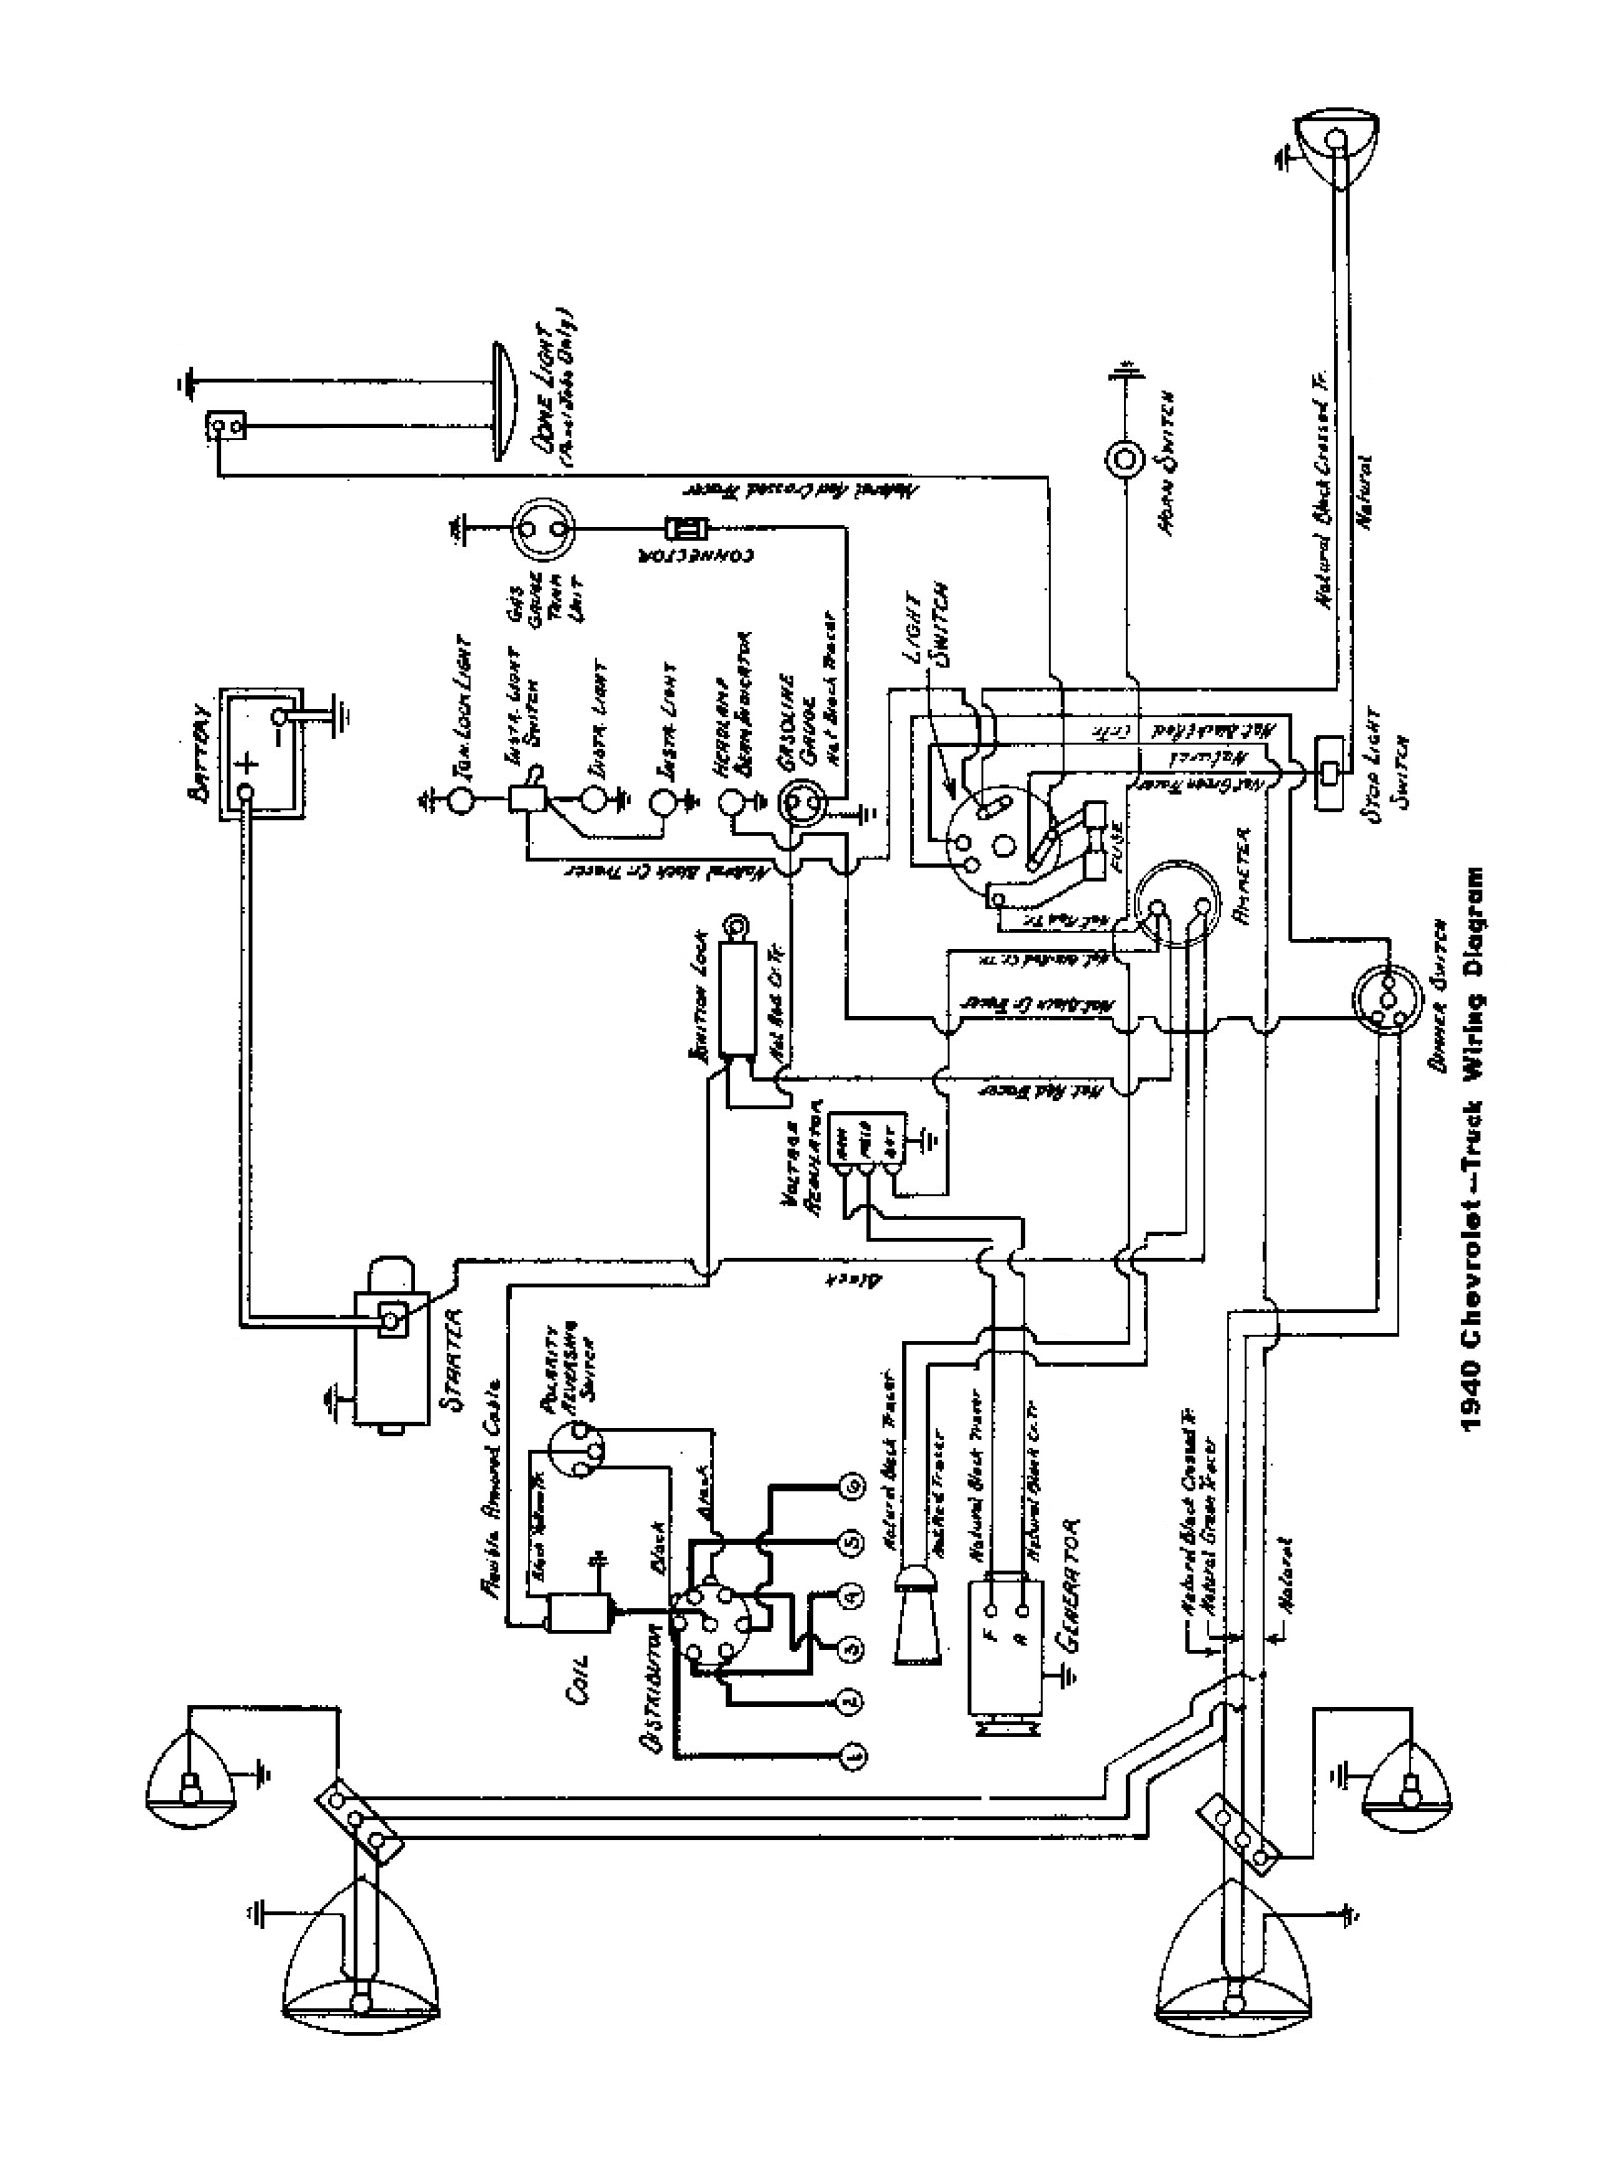 Chevy Wiring Diagrams Diagram Schemes For 1962 Chevrolet 6 Biscayne Belair And Impala Part 2 Schematics